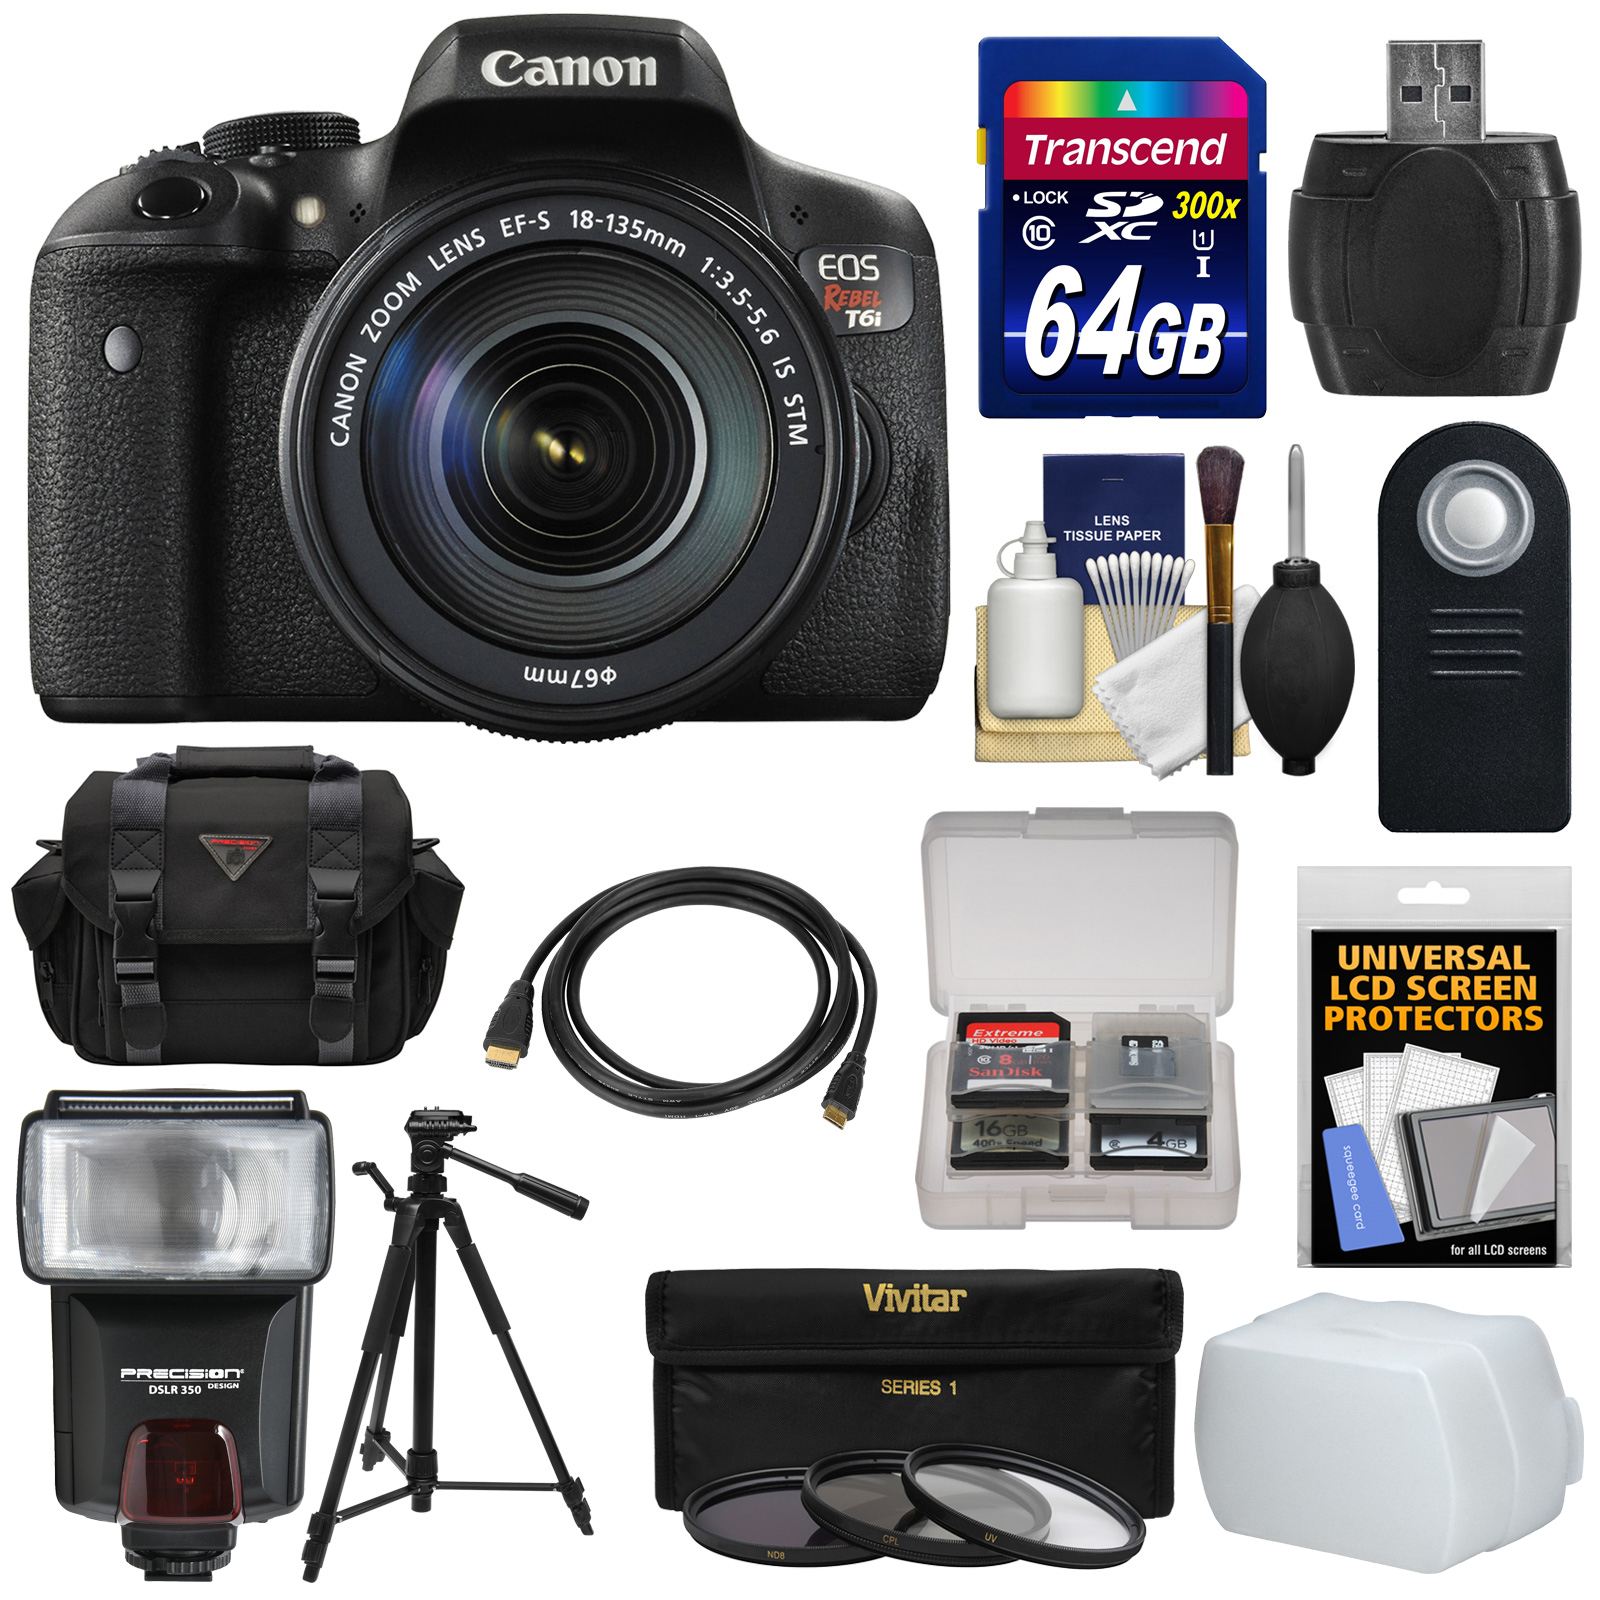 Canon EOS Rebel T6i Wi-Fi Digital SLR Camera & EF-S 18-135mm IS STM Lens with 64GB Card + Case + Tripod +... by Canon